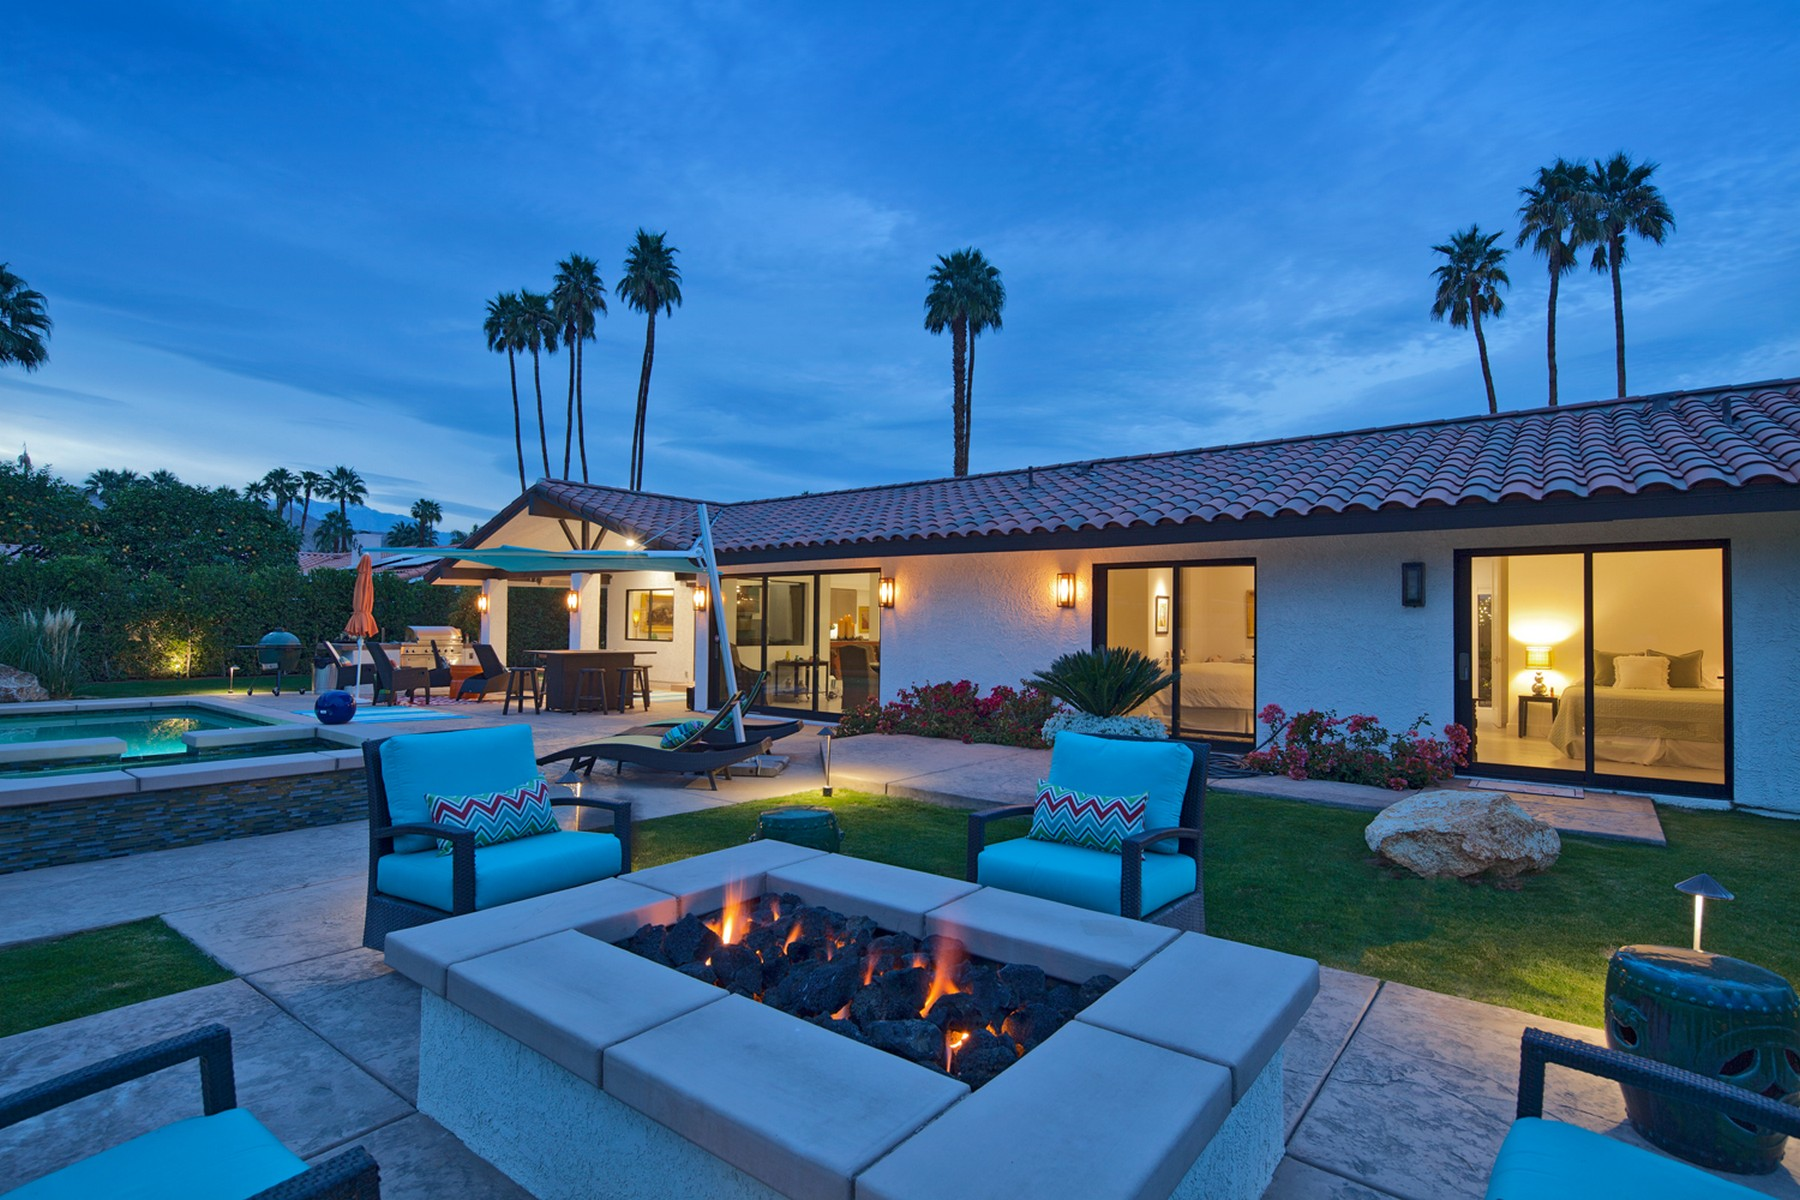 Single Family Home for Sale at 72377 Magnesia Falls Drive Rancho Mirage, California 92270 United States